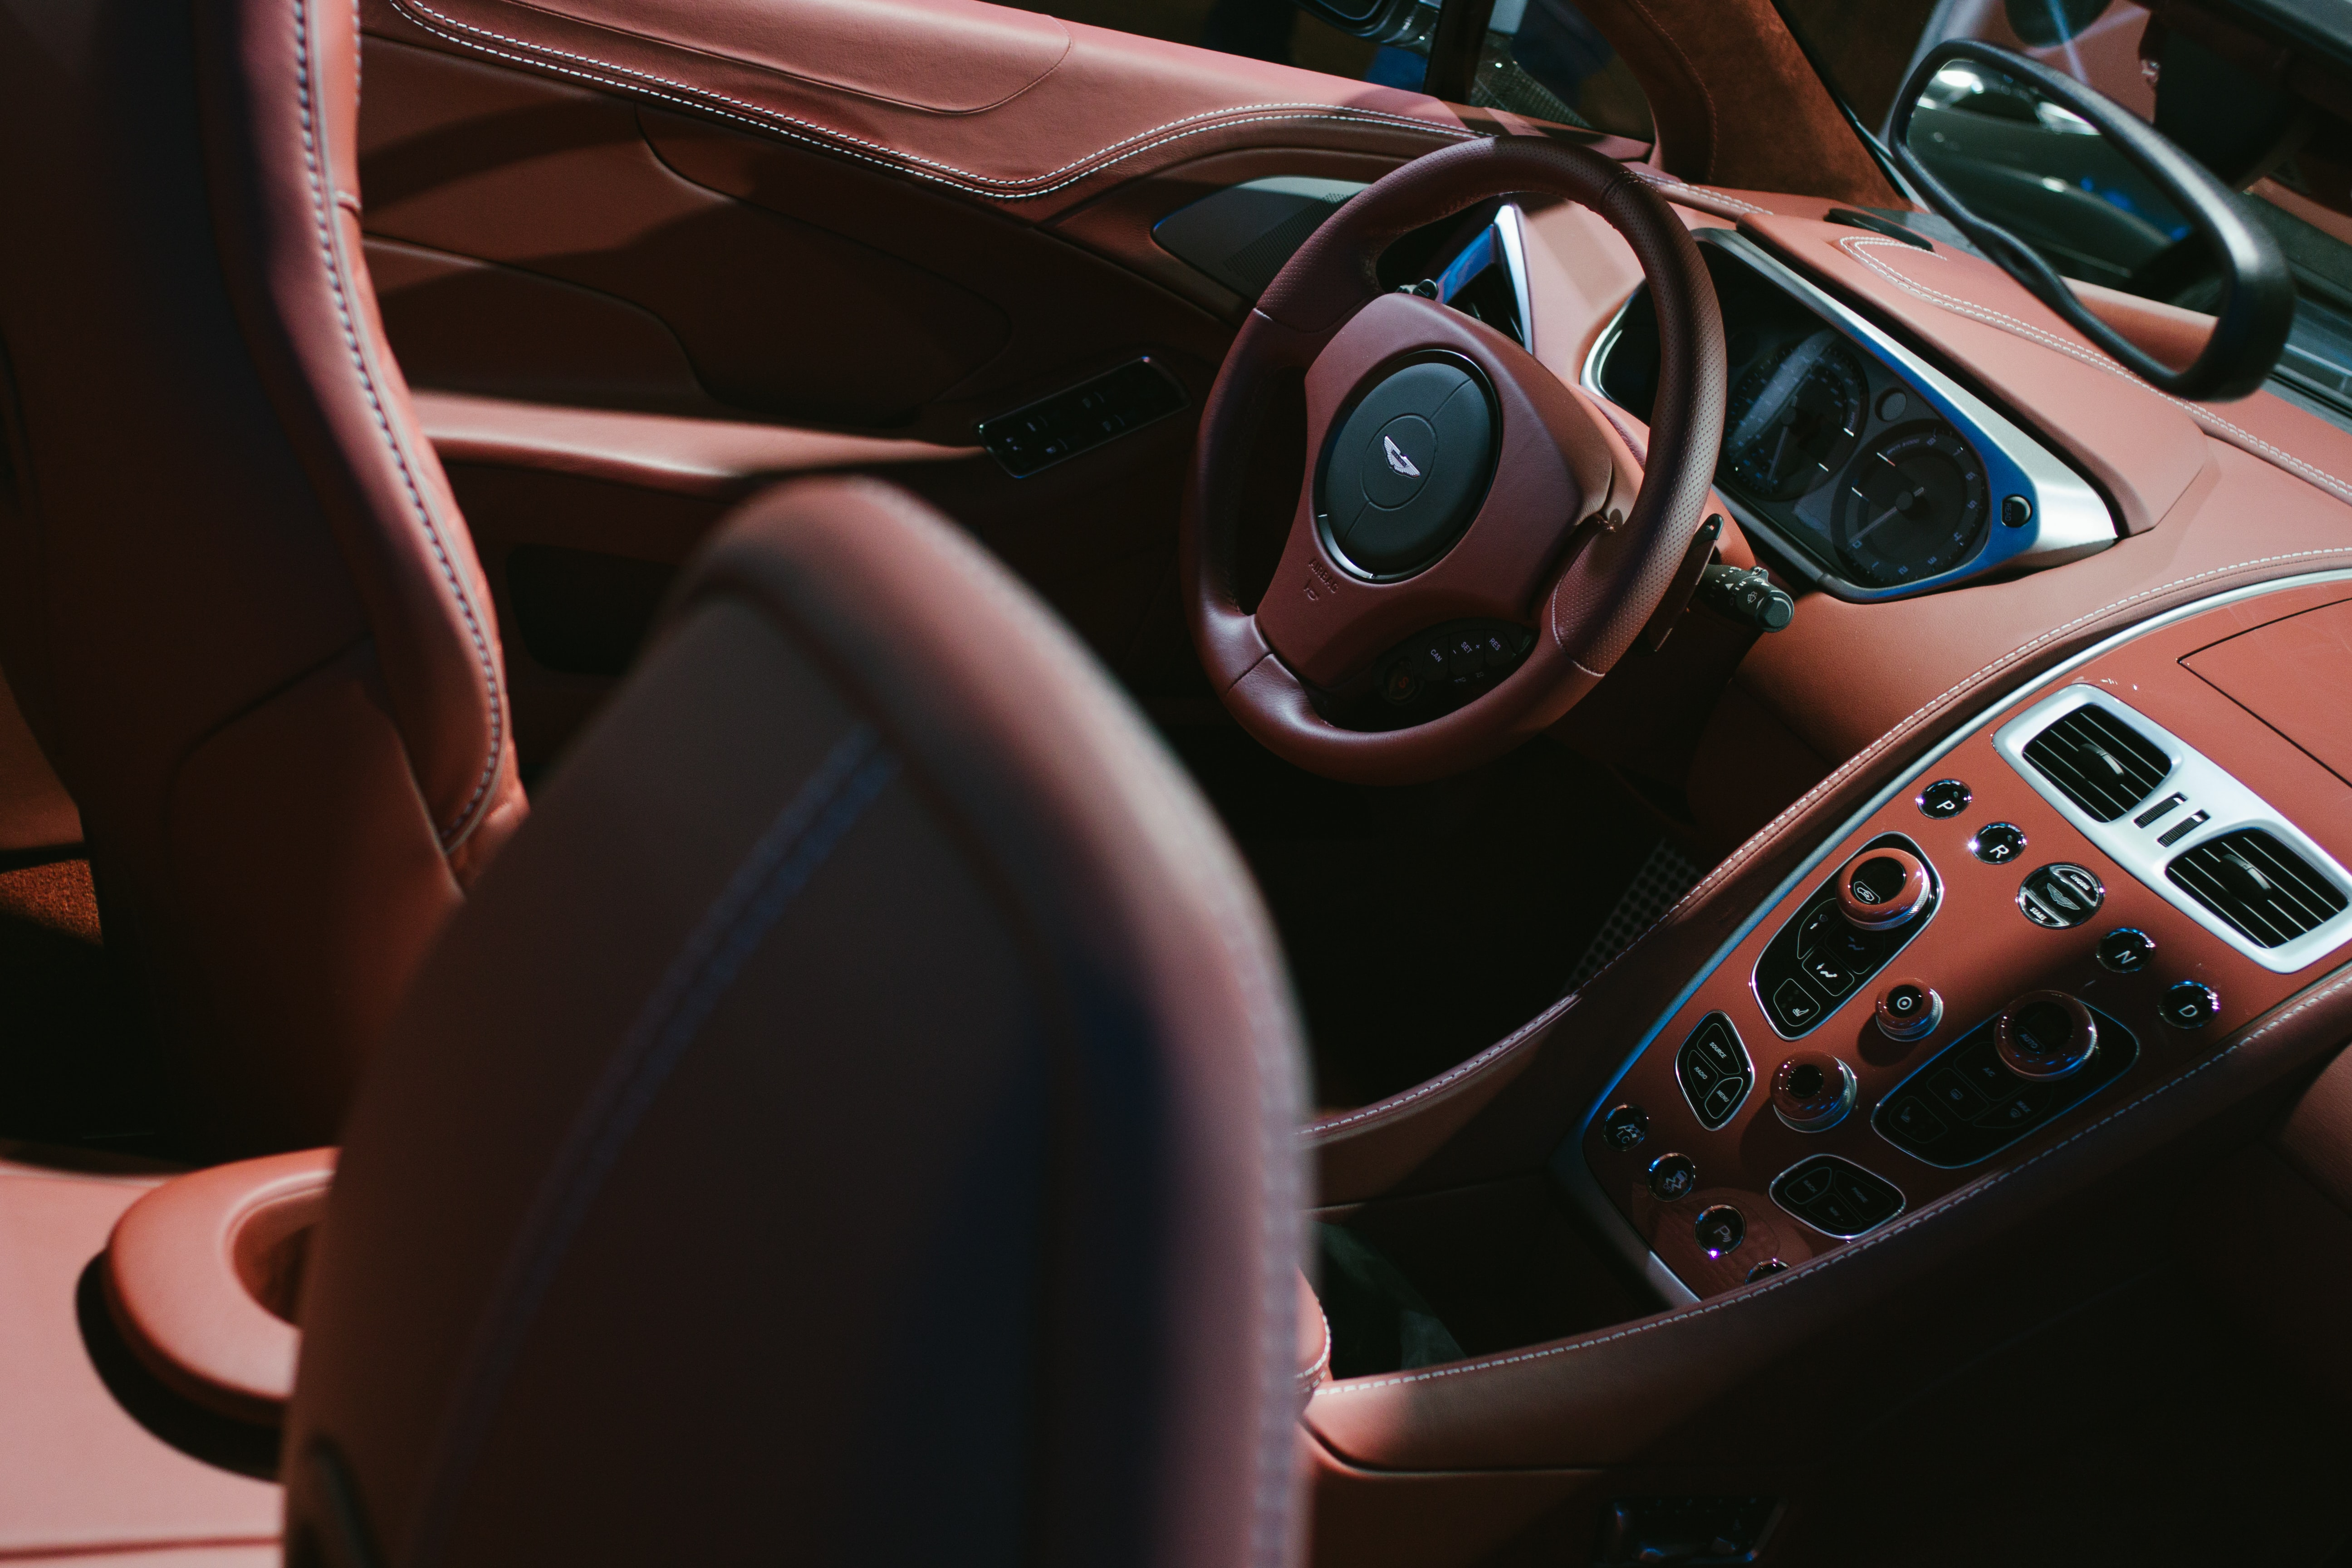 Luxury car with red leather interior